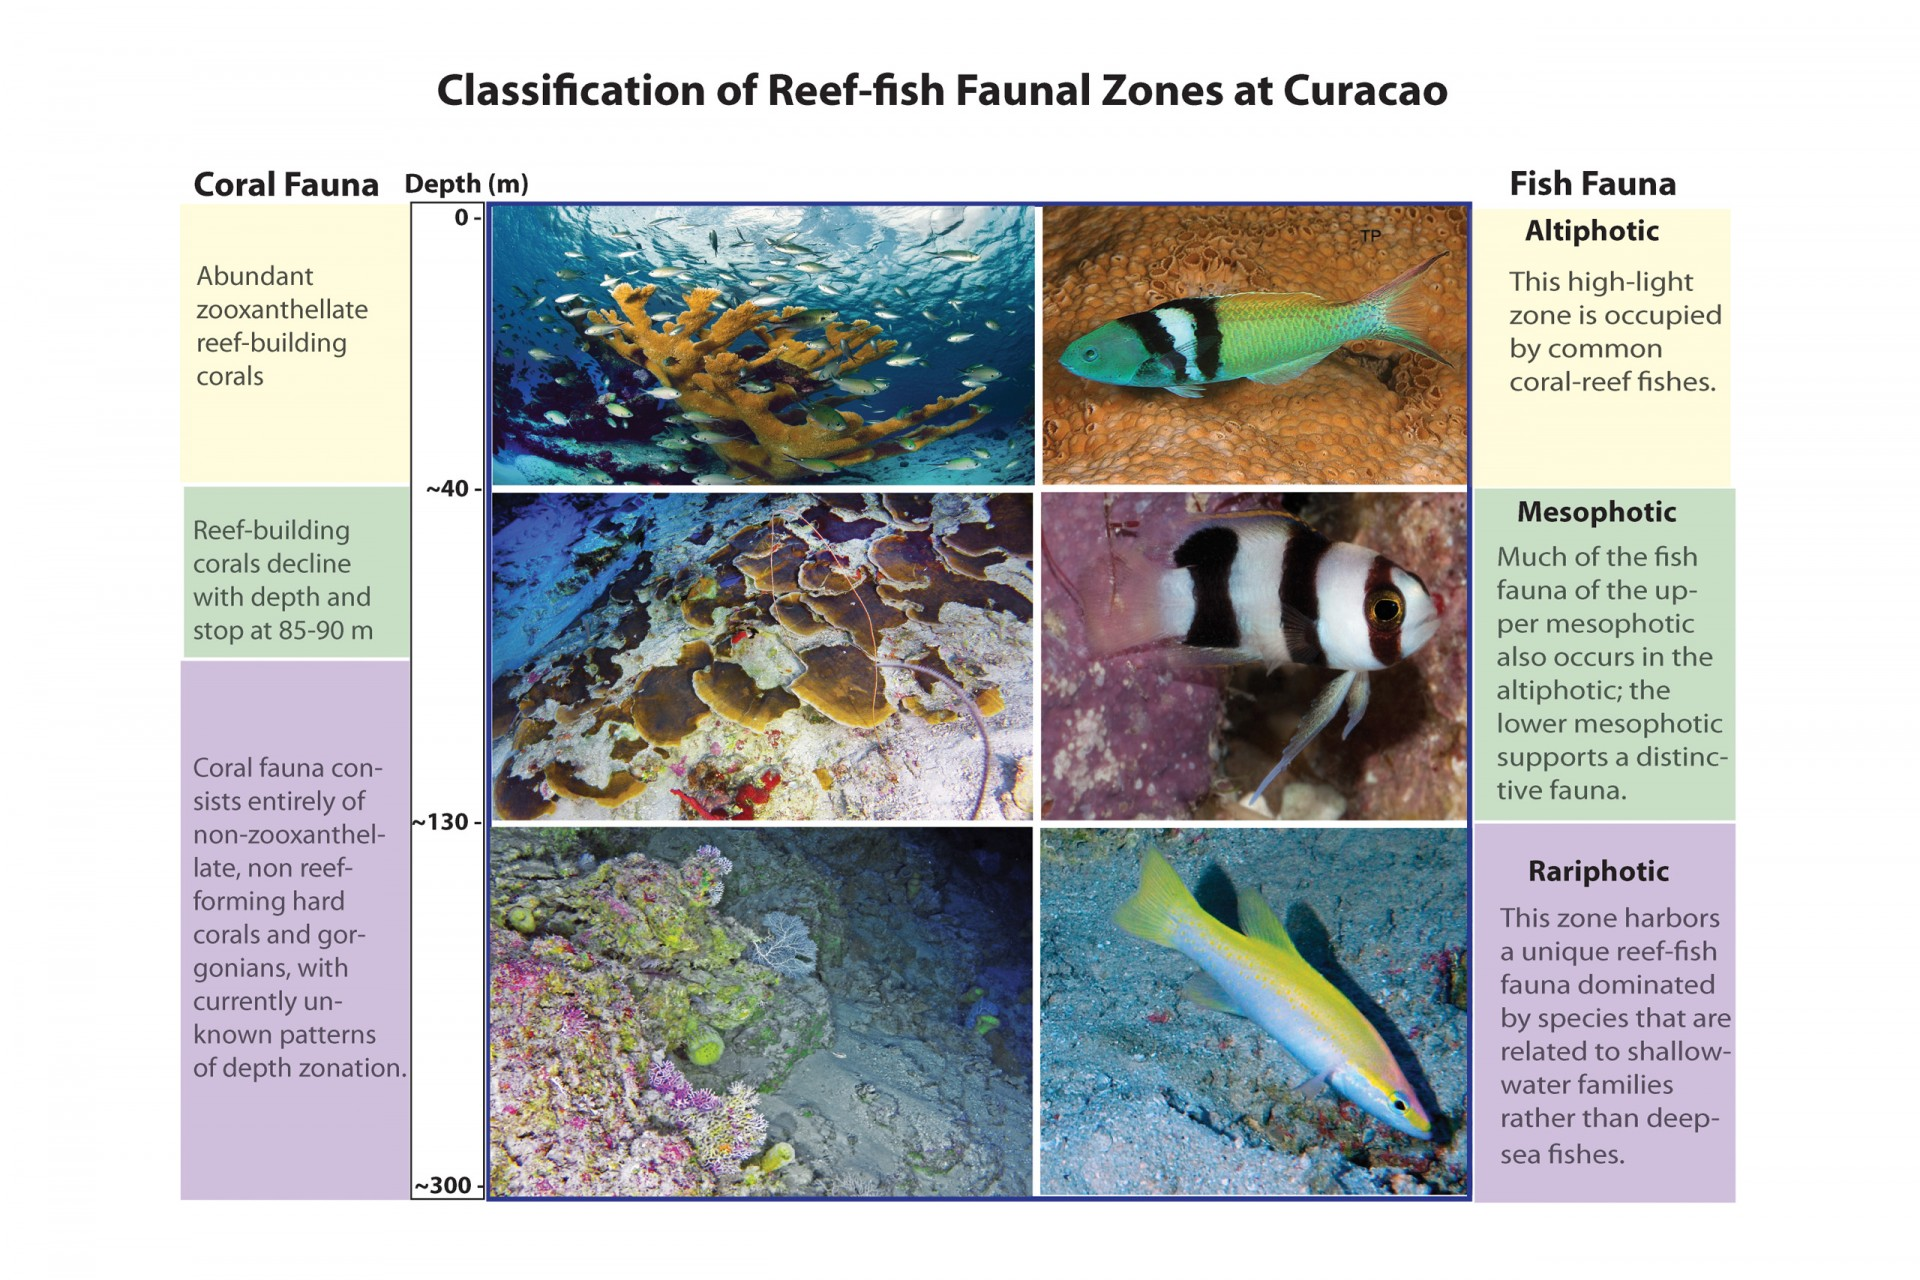 Classification of faunal zones above the aphotic based on analysis of fish assemblages at Curaçao